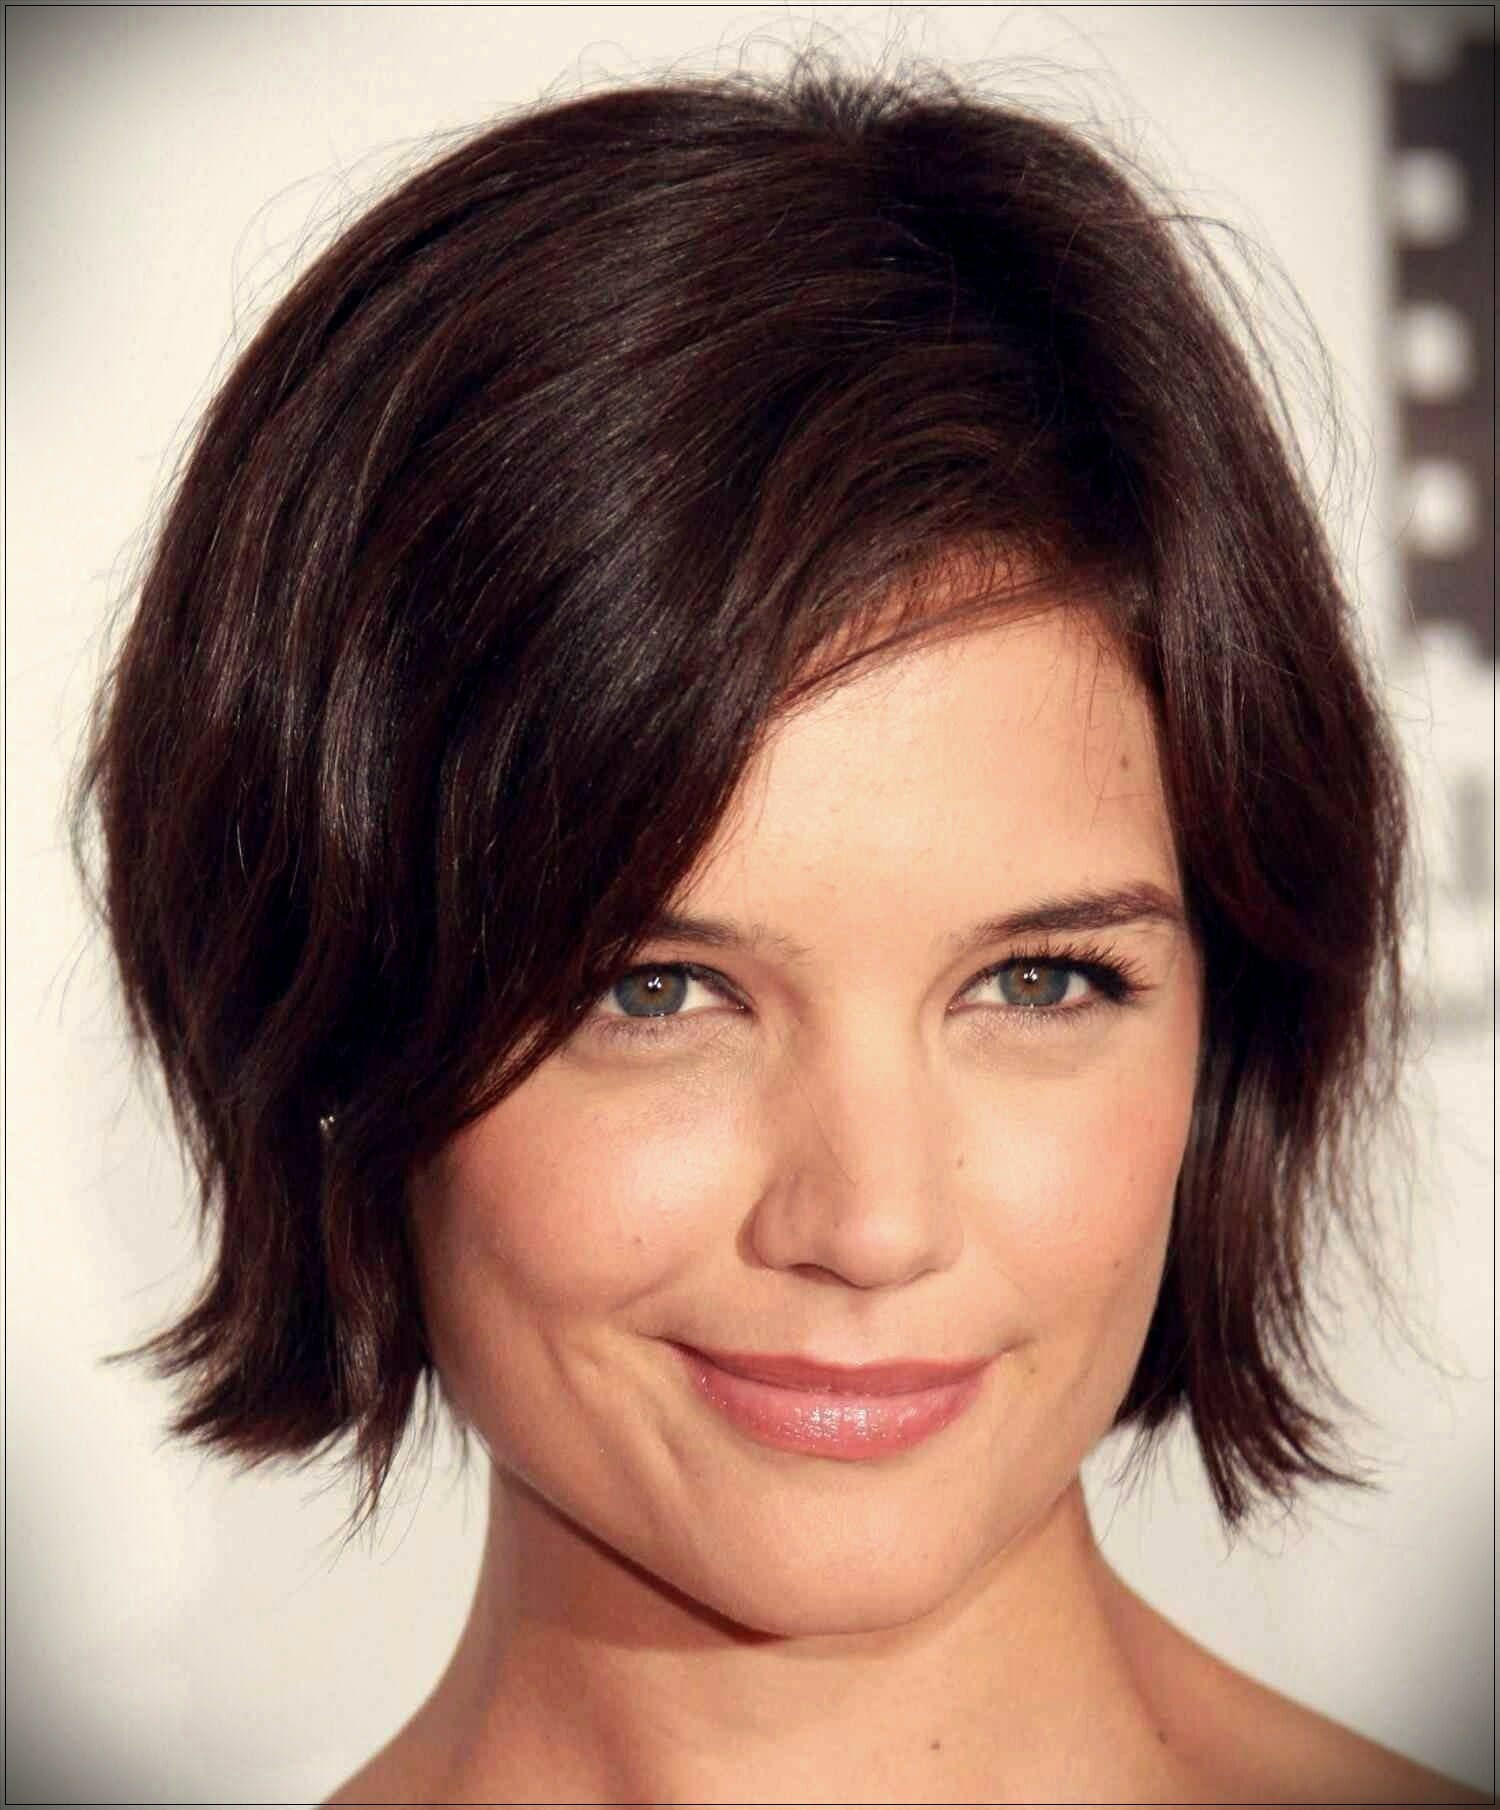 short hairstyles for round faces 2 - Correct hairstyles for your face type